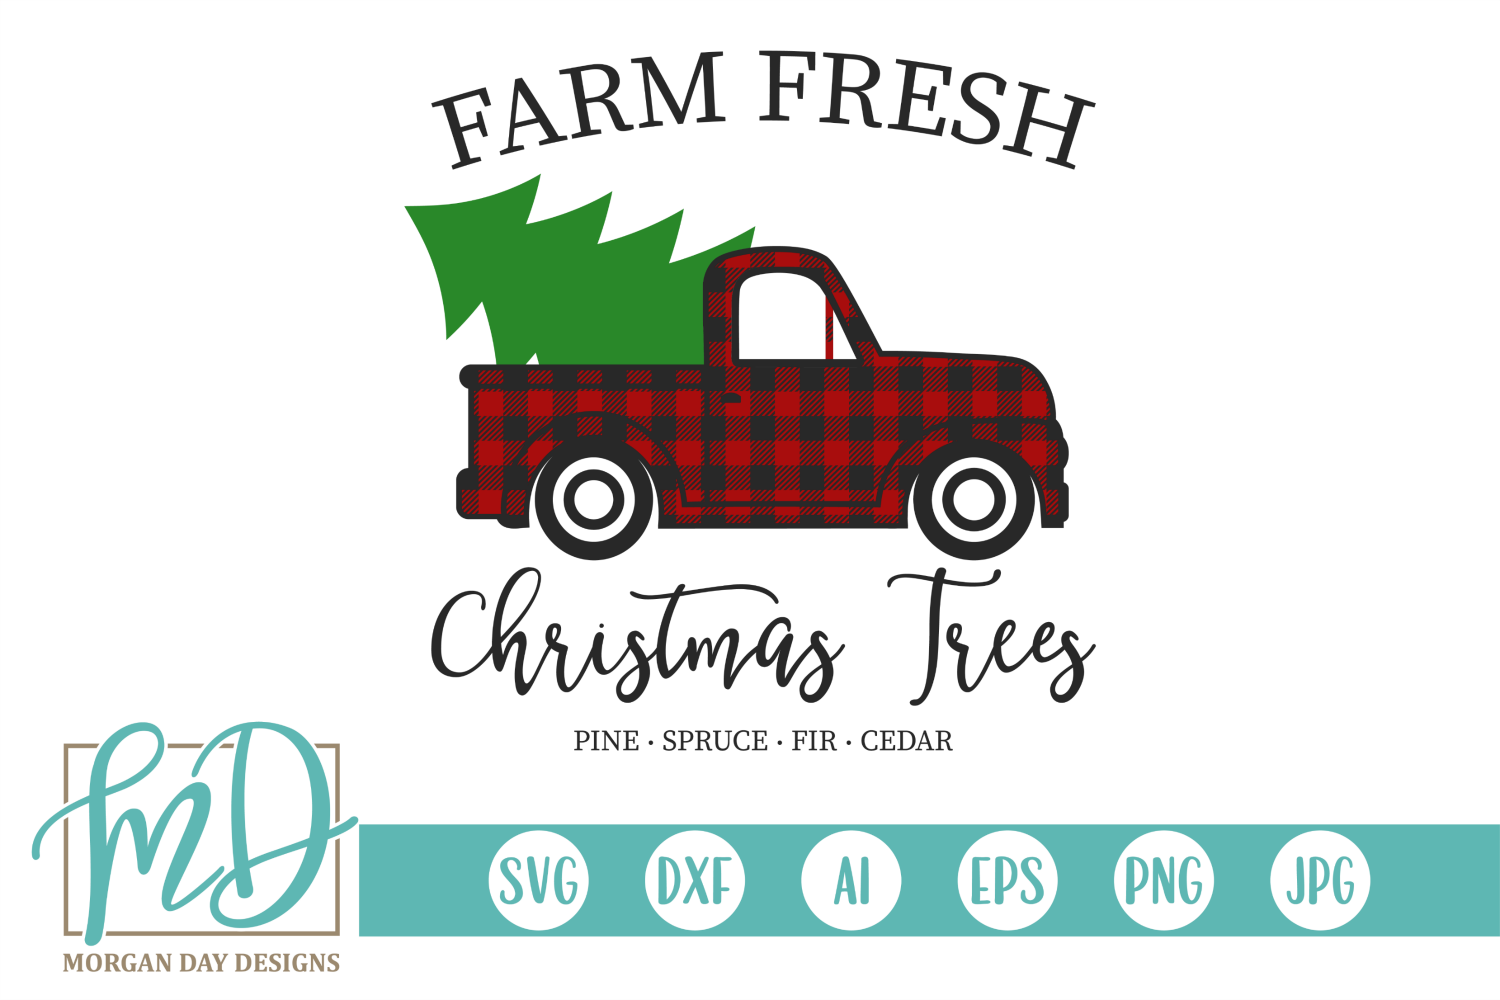 Download Free Farm Fresh Christmas Trees Graphic By Morgan Day Designs for Cricut Explore, Silhouette and other cutting machines.